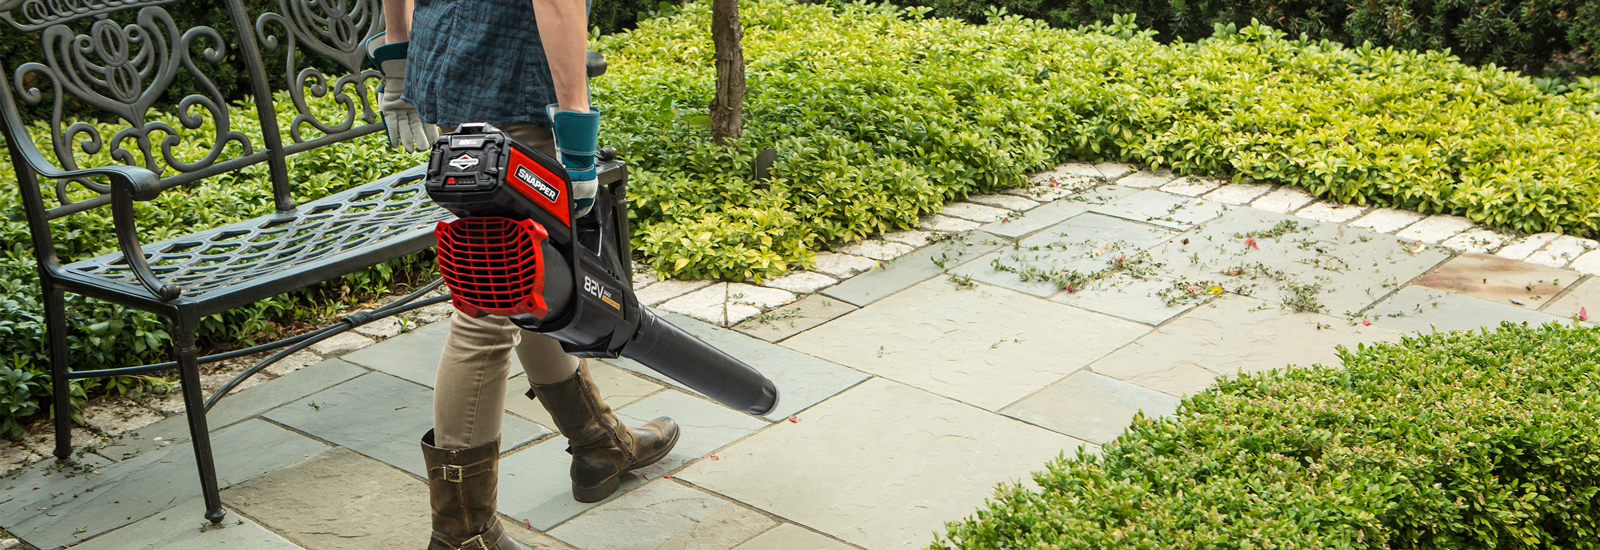 Snapper Electric Leaf Blower